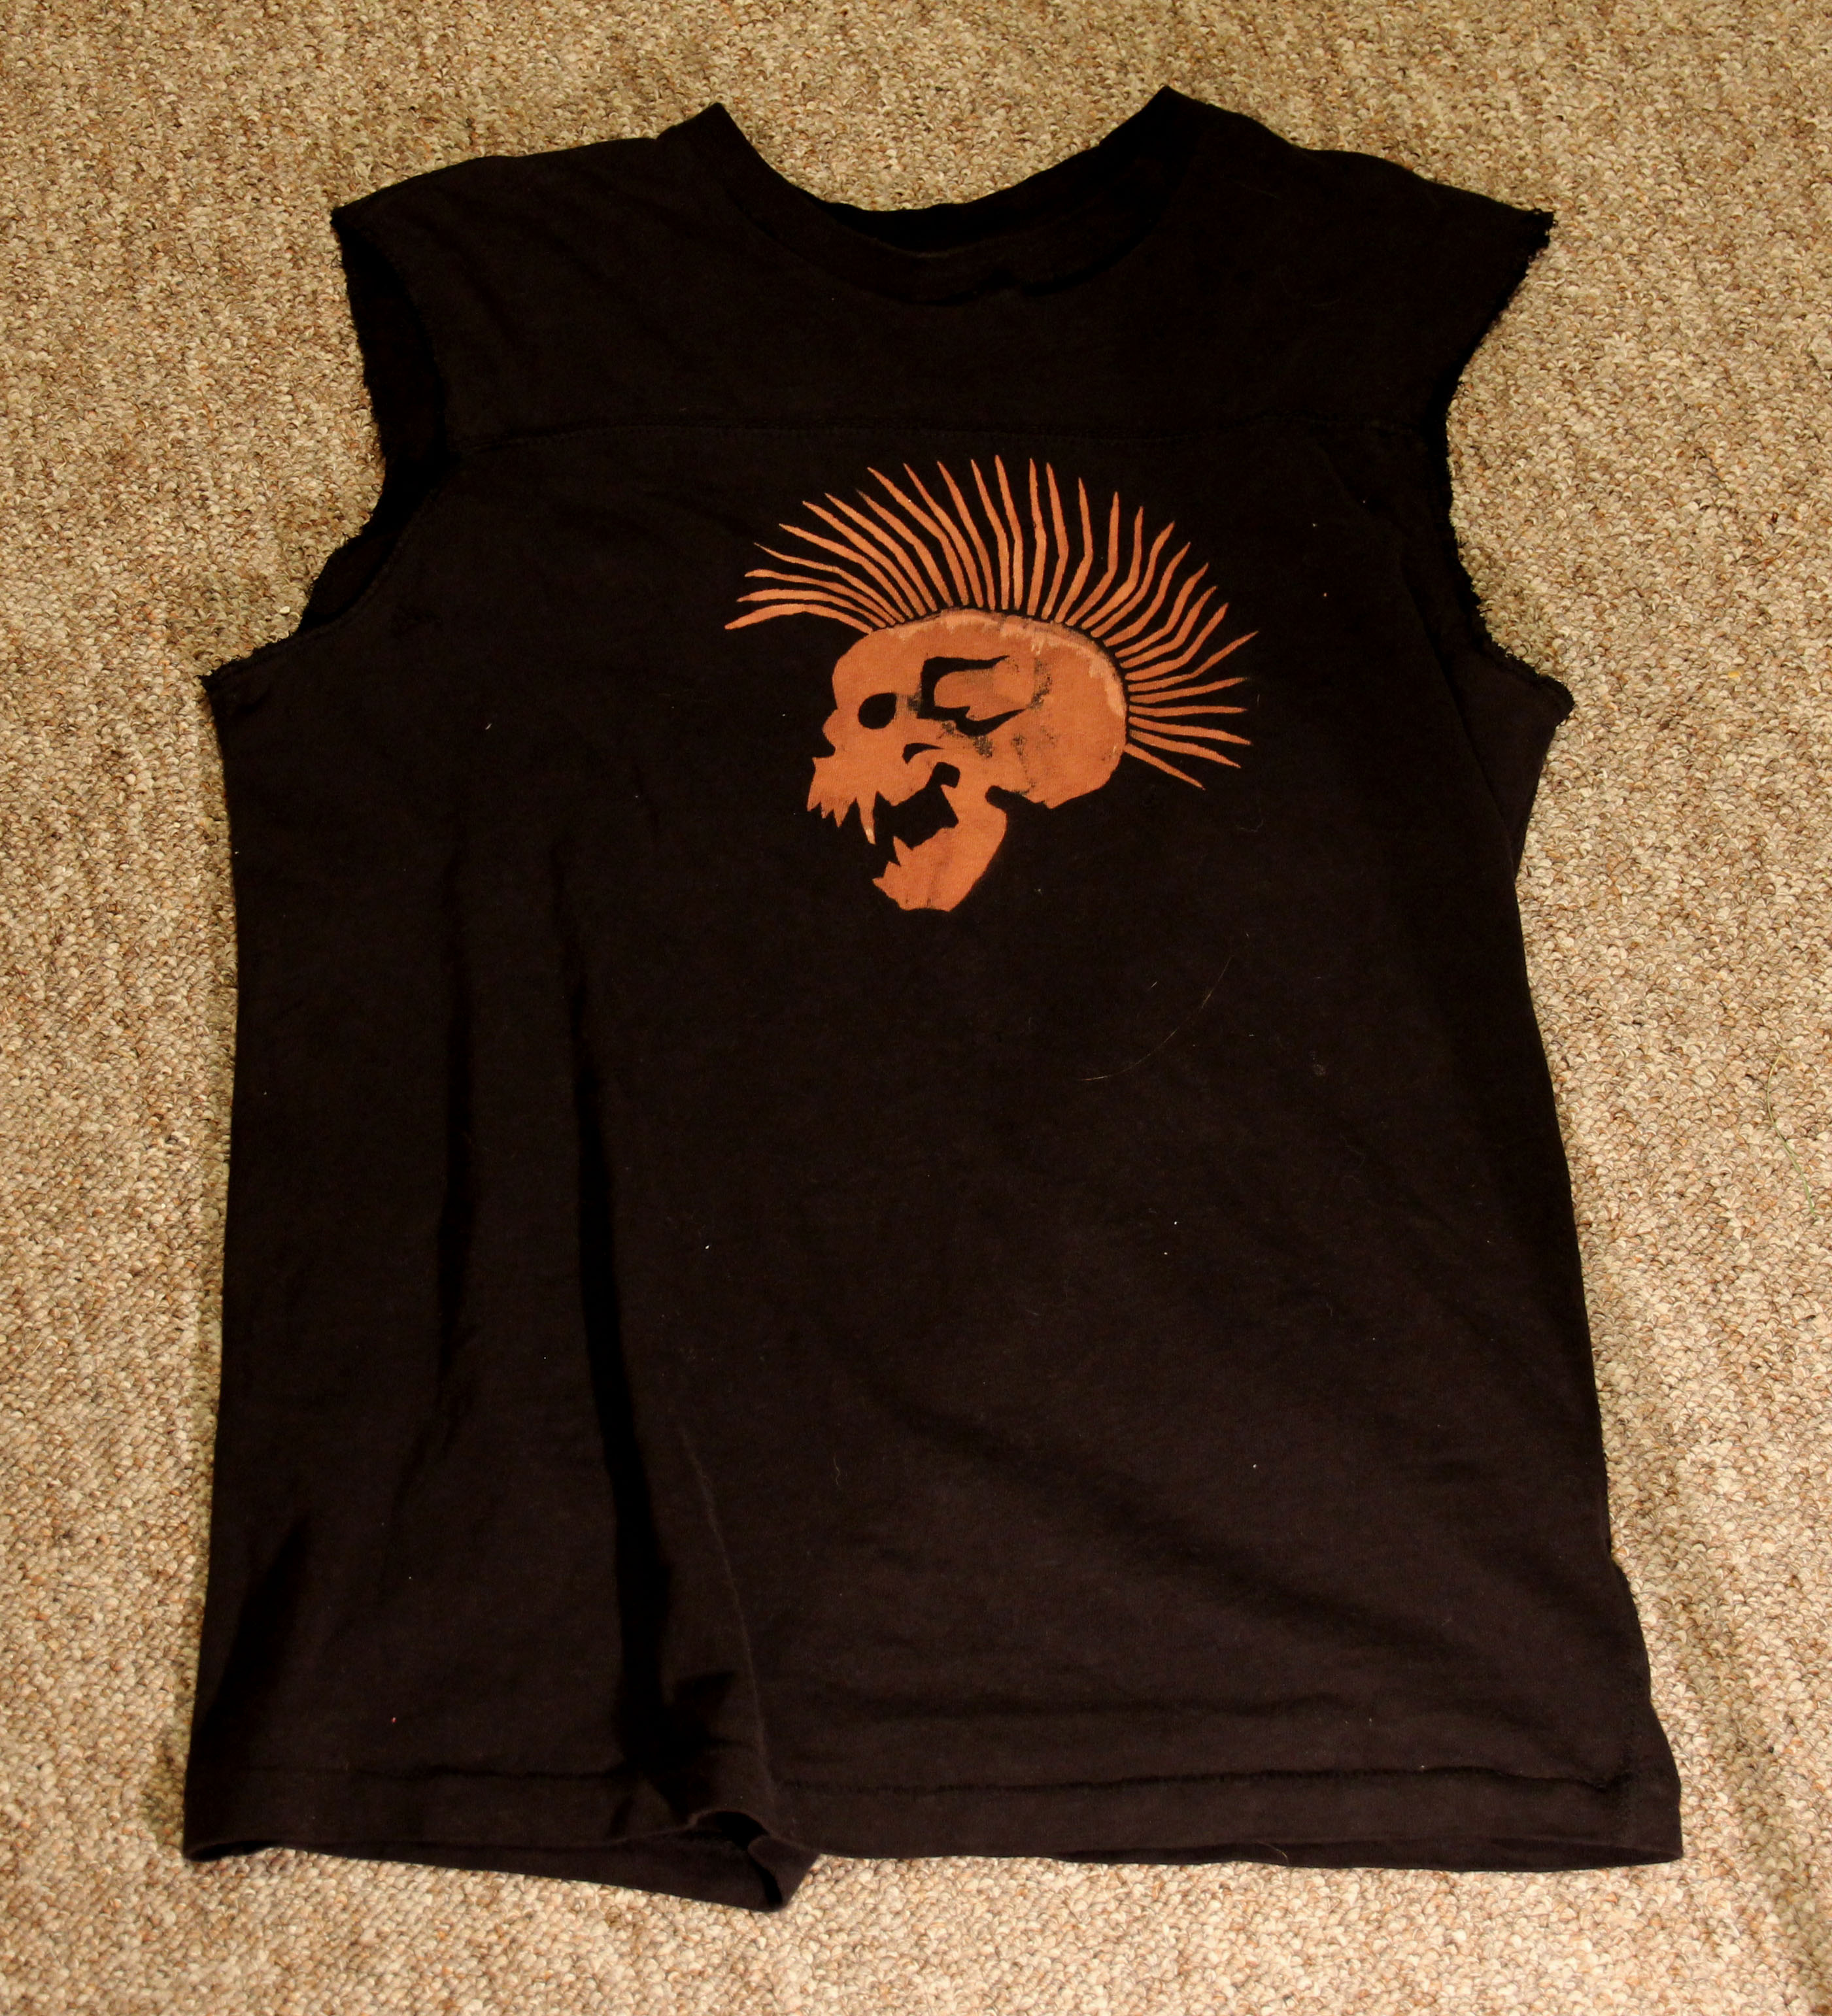 Picture of Cutting the Tshirt Into a Tank Top